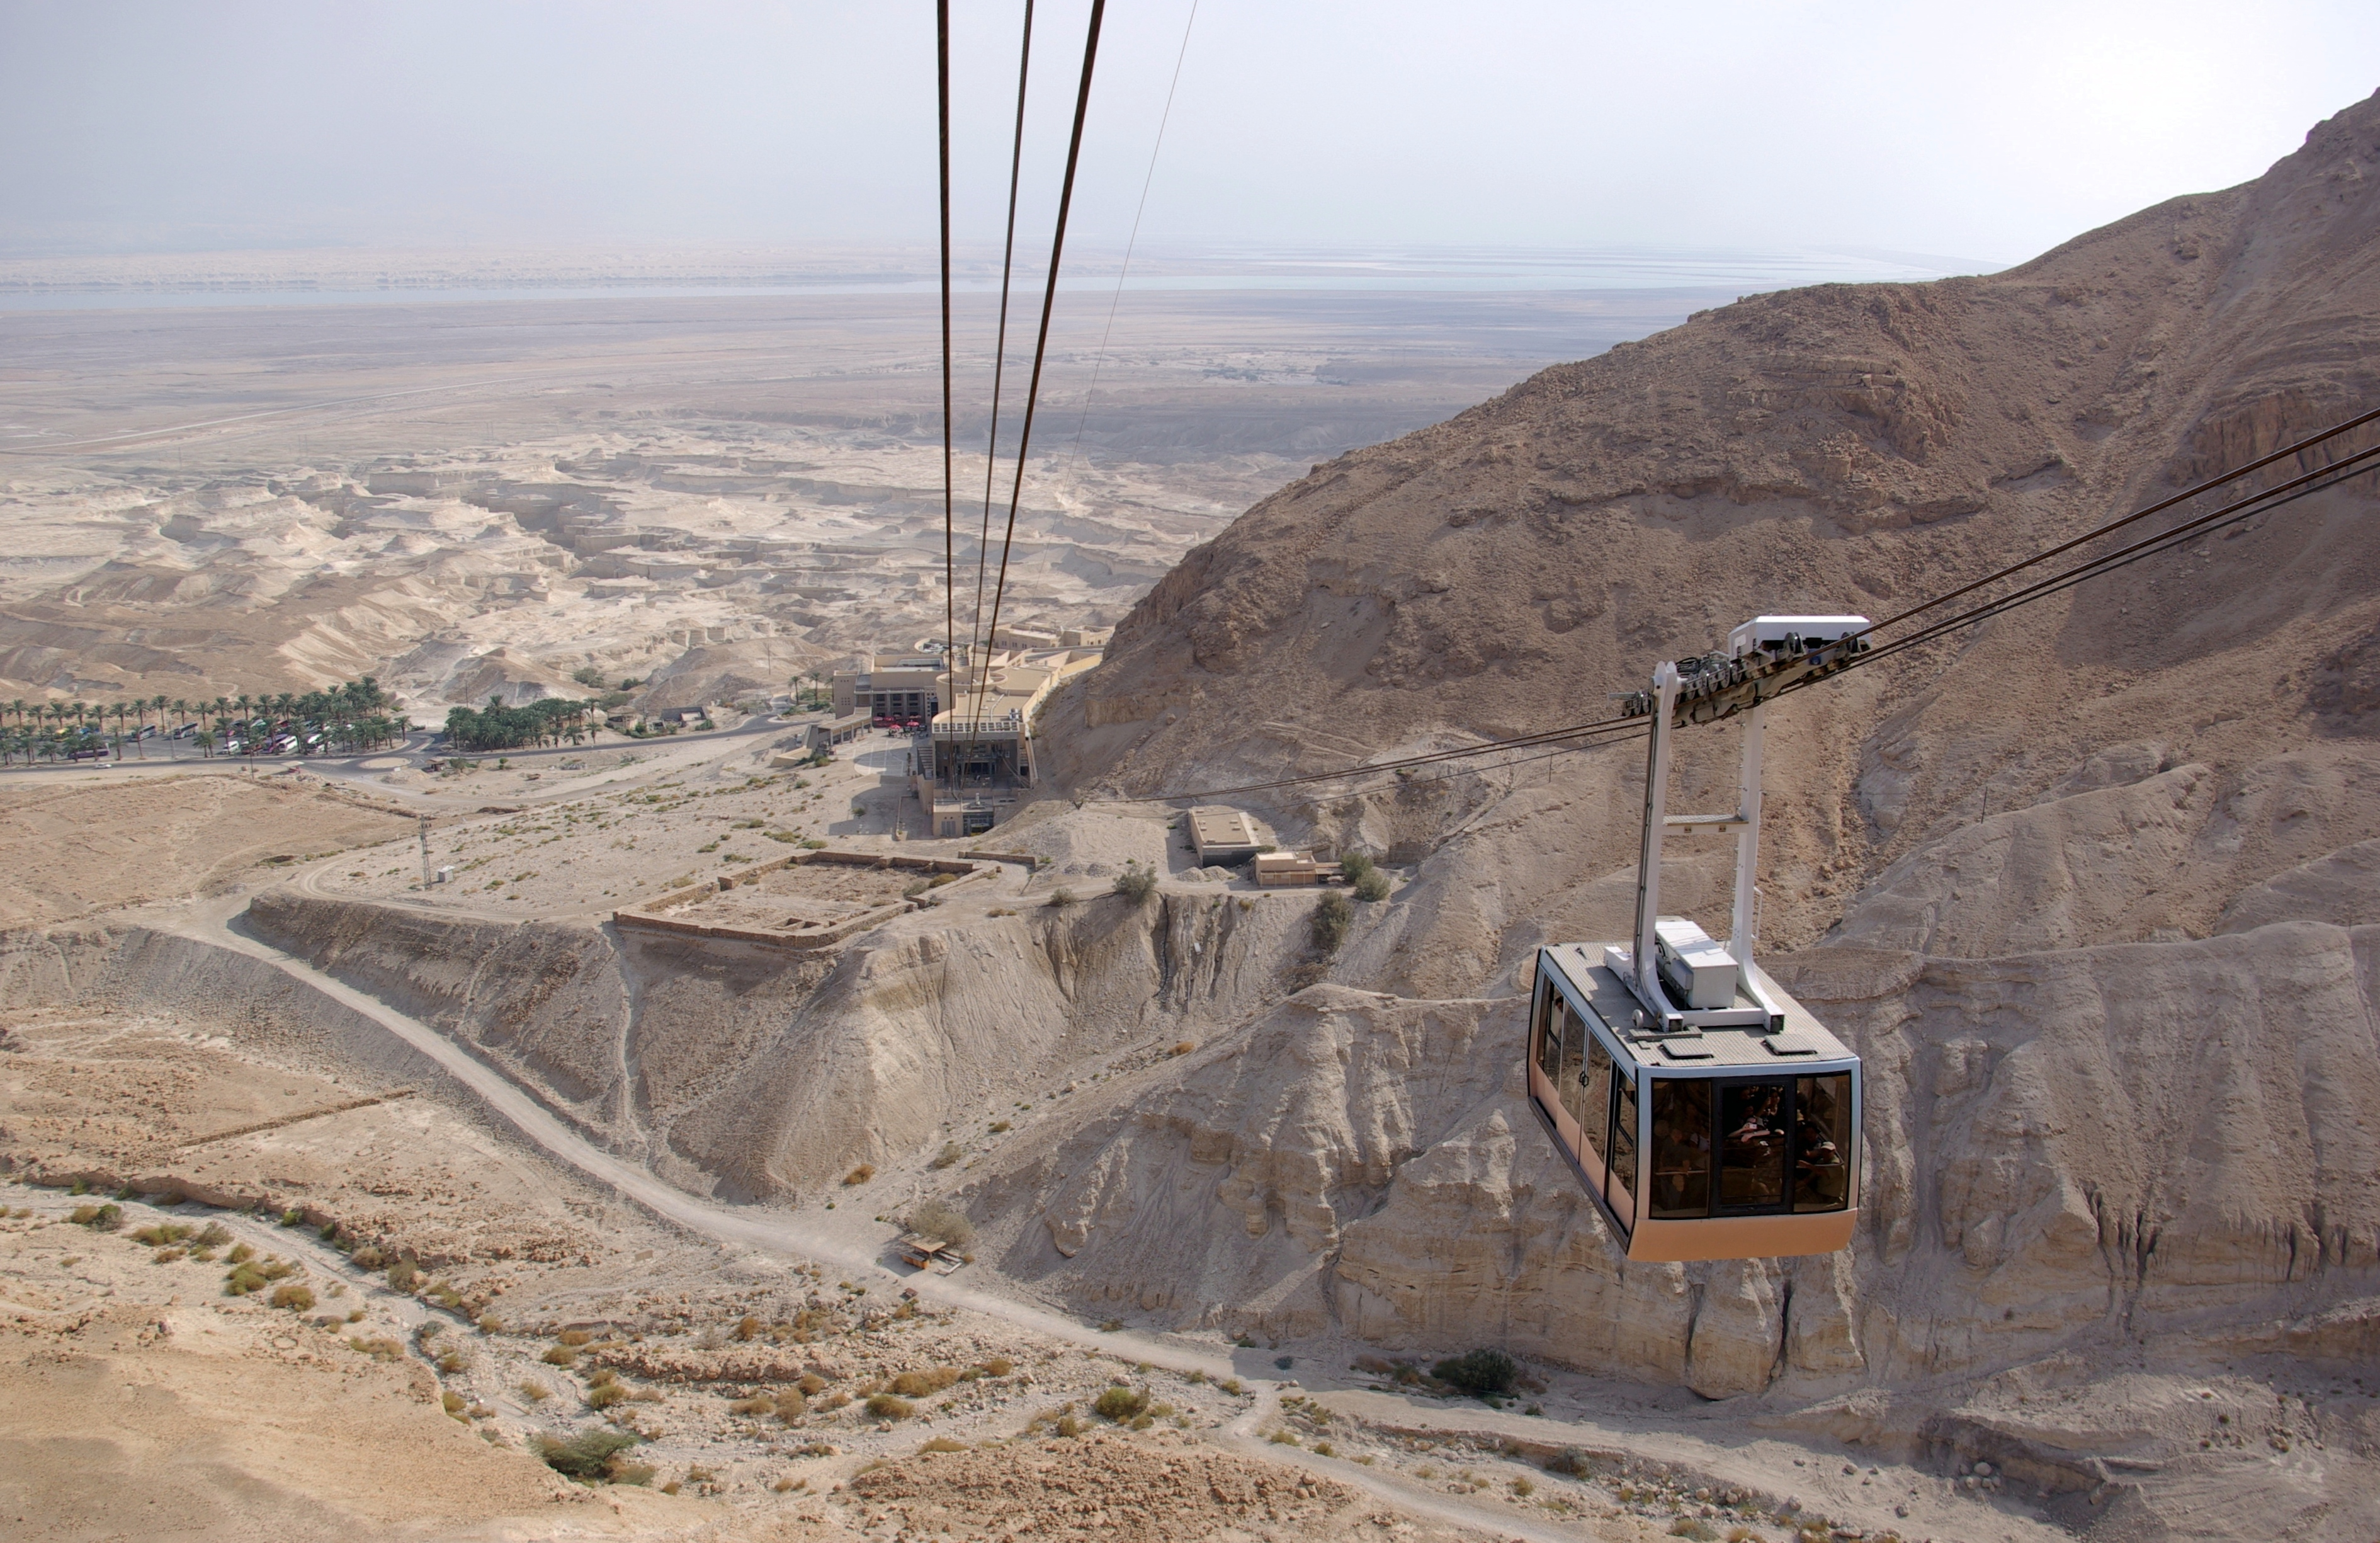 aerial camera with File Israel Aereal Ropeway Masada Bw 4 on Remote Sensing additionally File Grass Field   geograph org uk   183289 also Gillette Stadium 3 moreover 19438641 as well File Nima highway  Accra  Ghana.